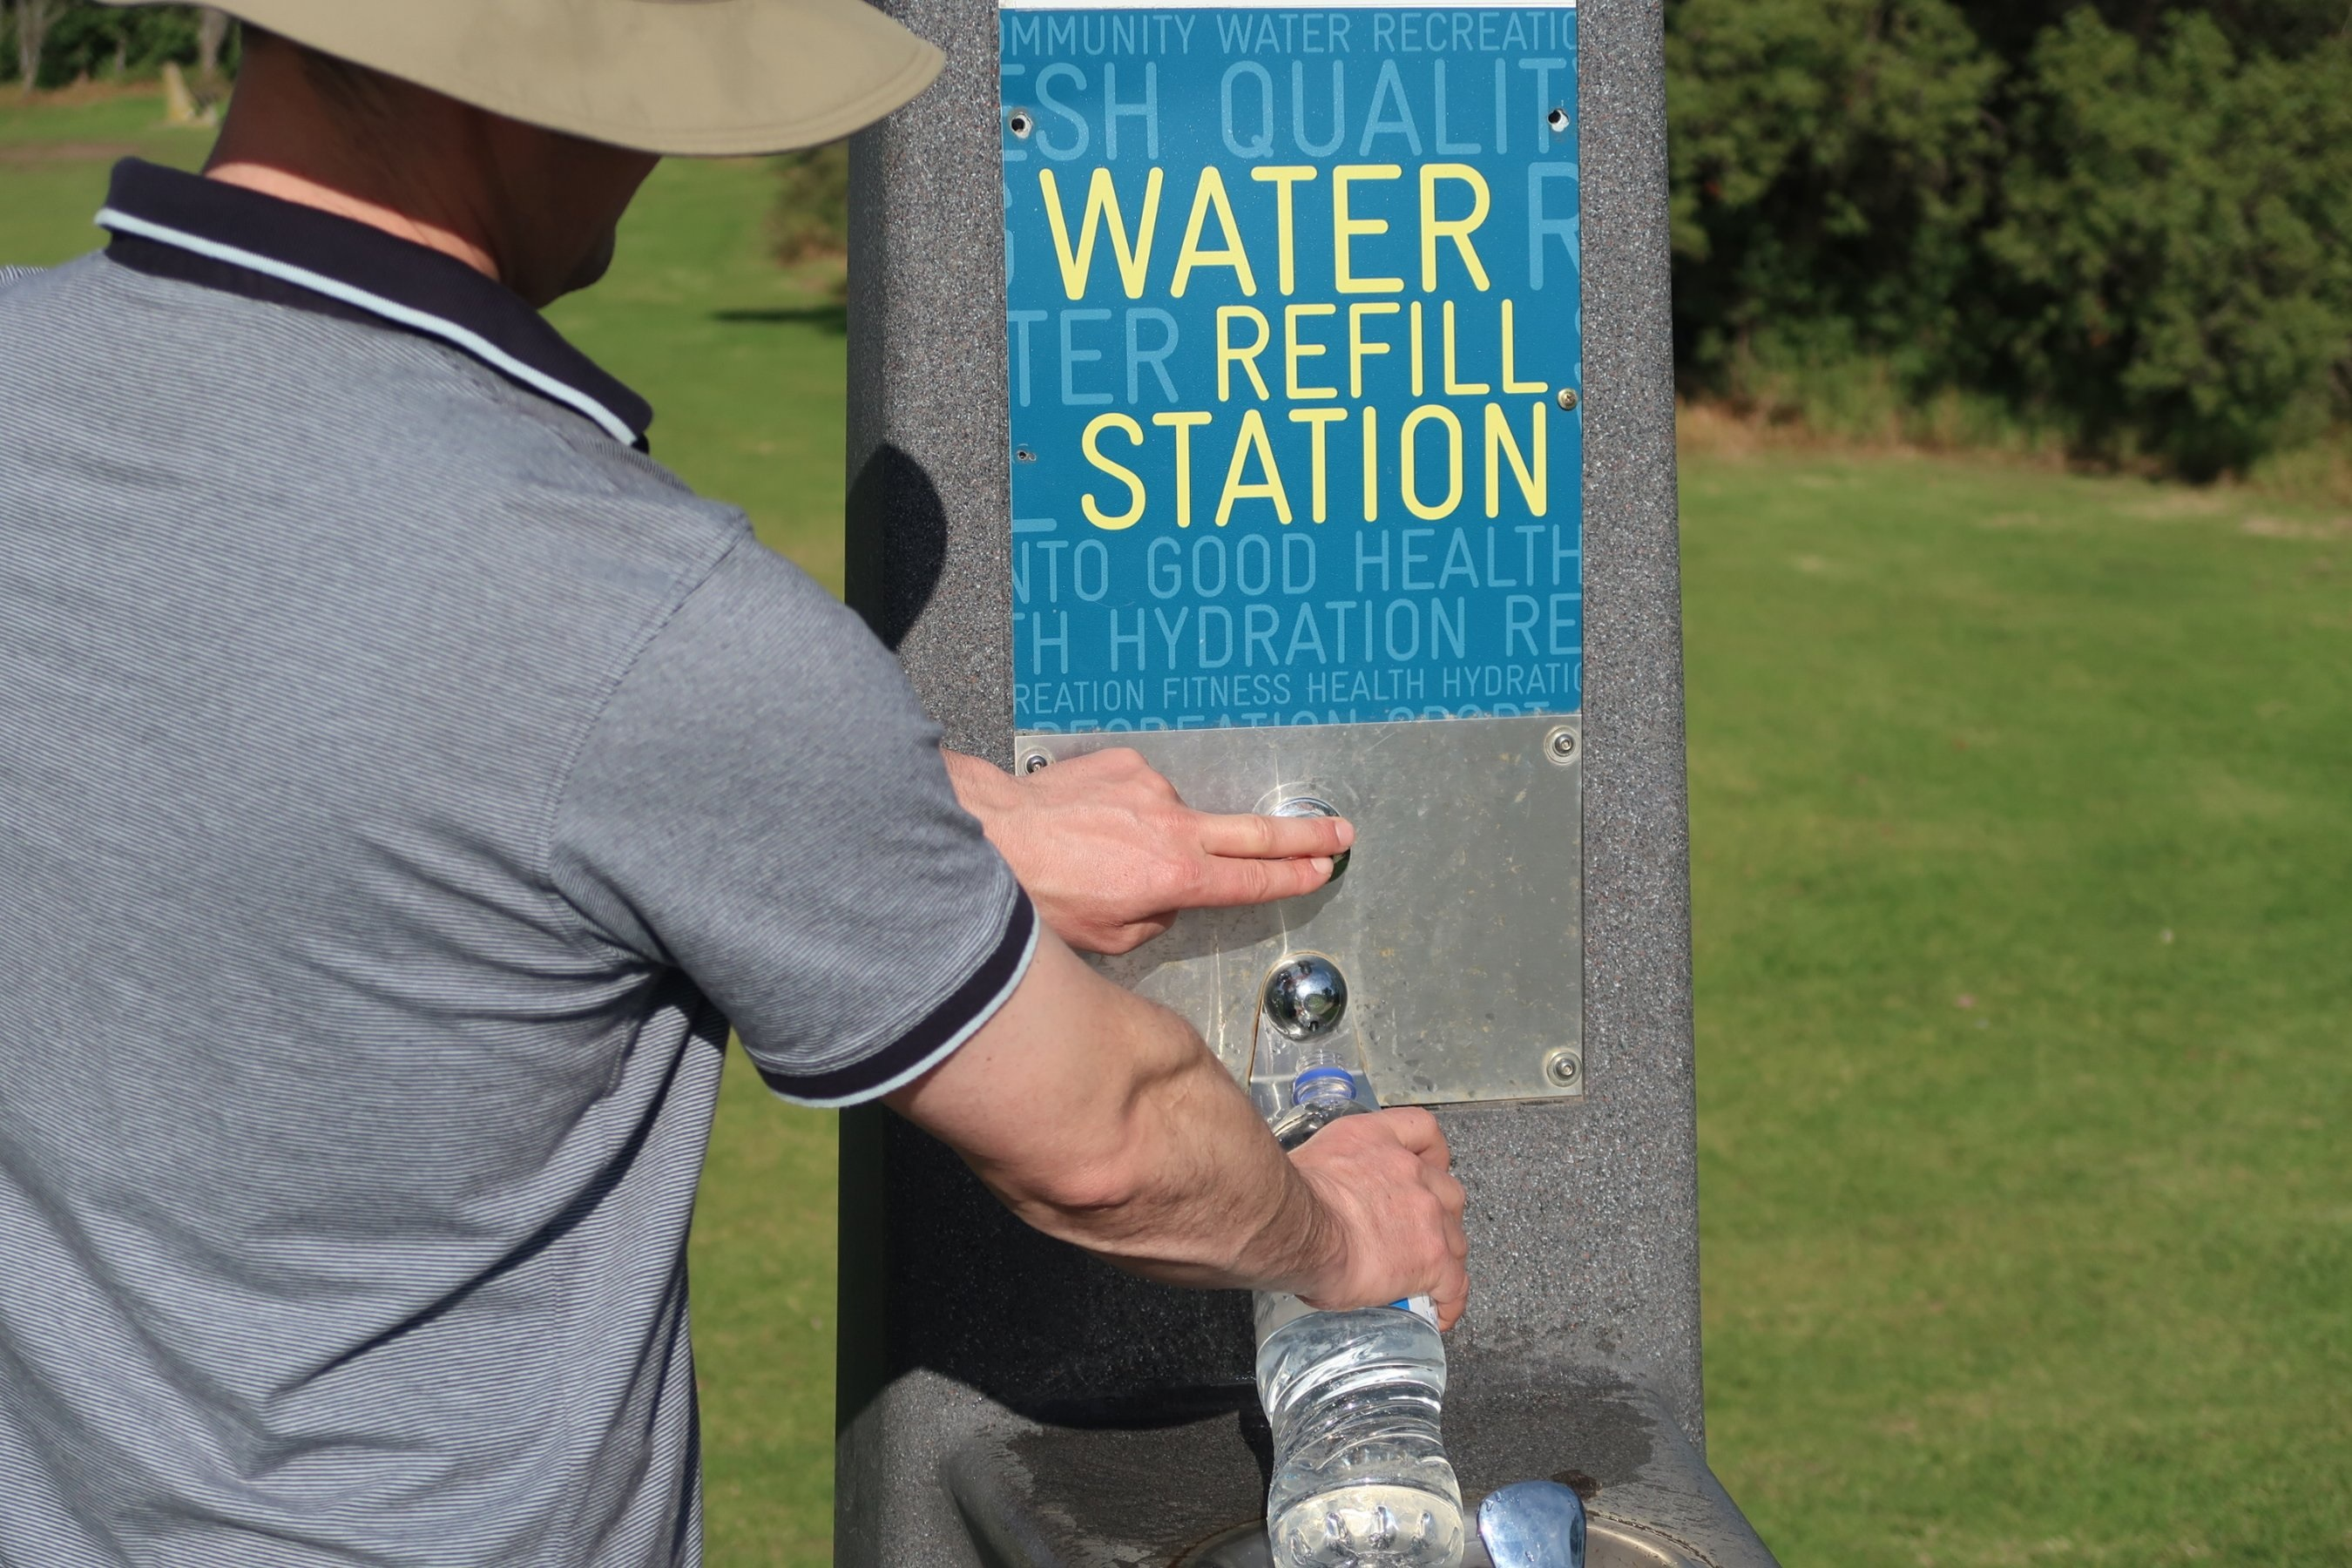 Person using a campus hydration station